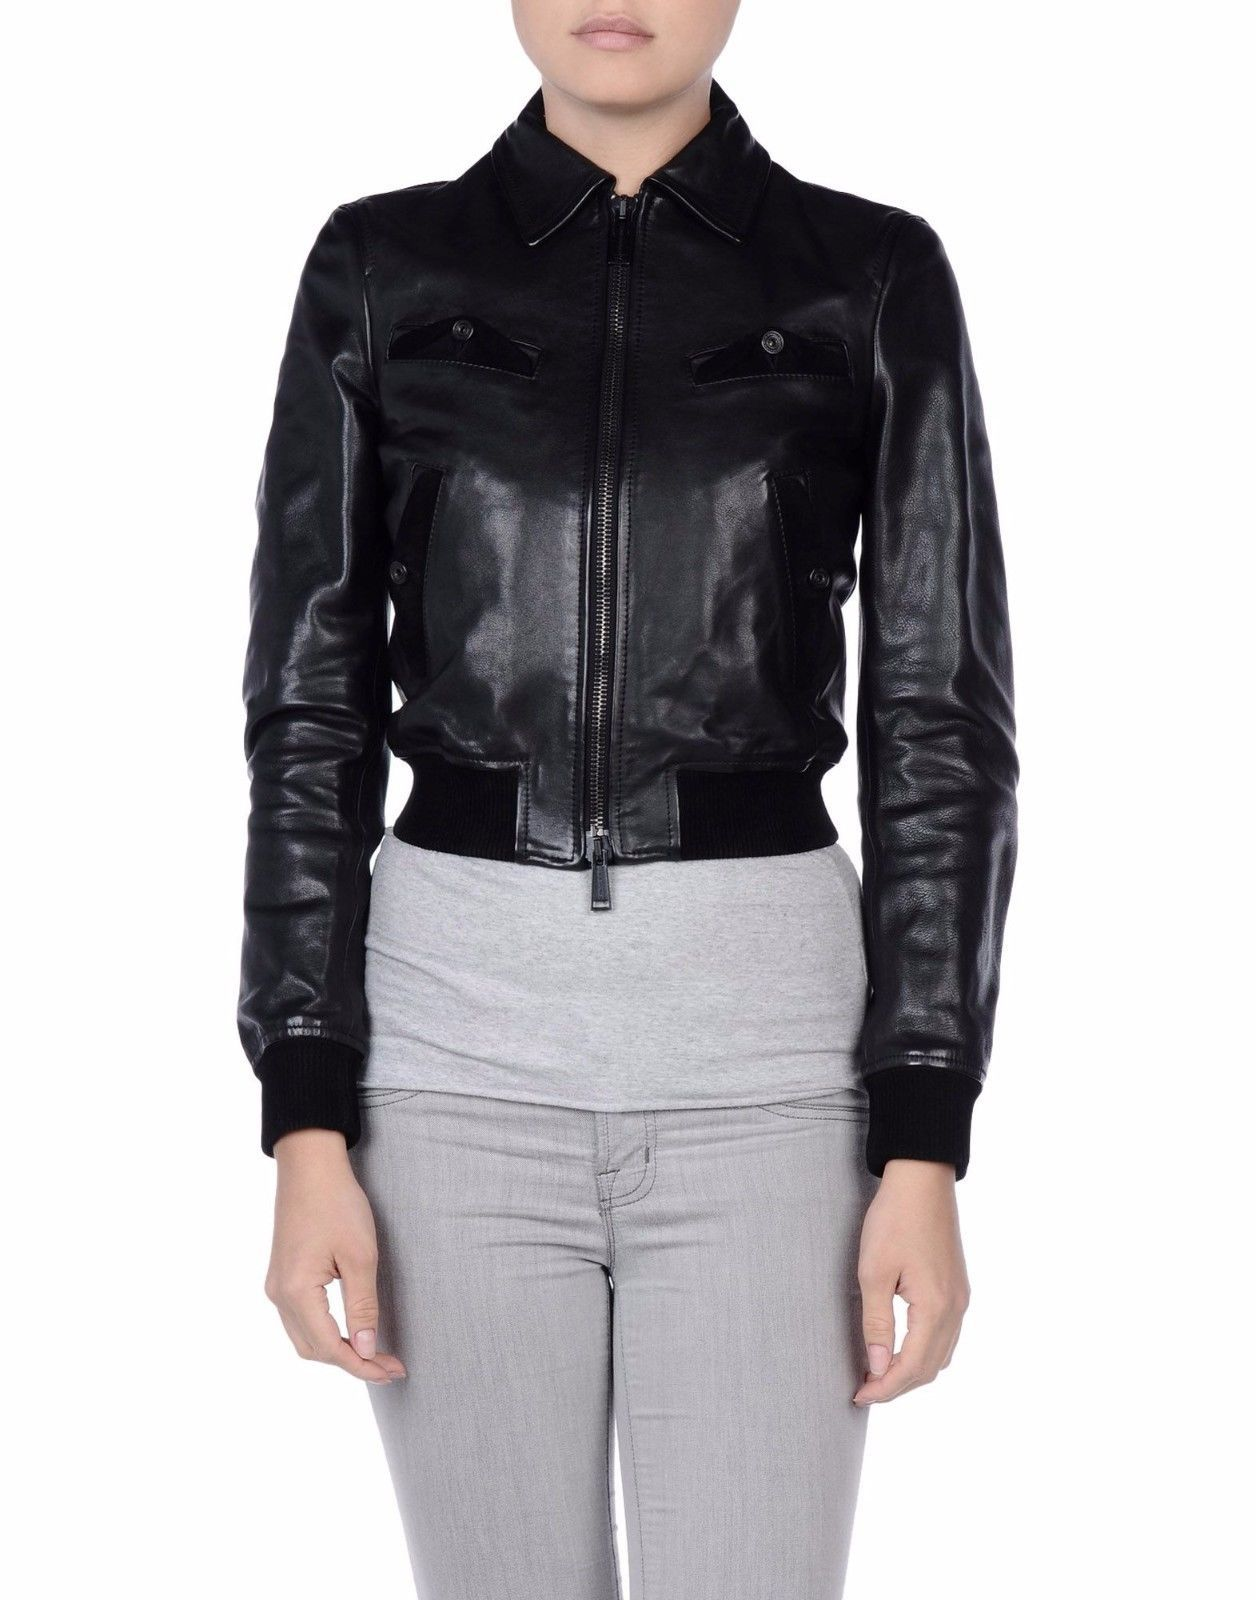 Winter Women Leather Motorcycle Women Genuine Leather Jacket Biker Jacket HL-162